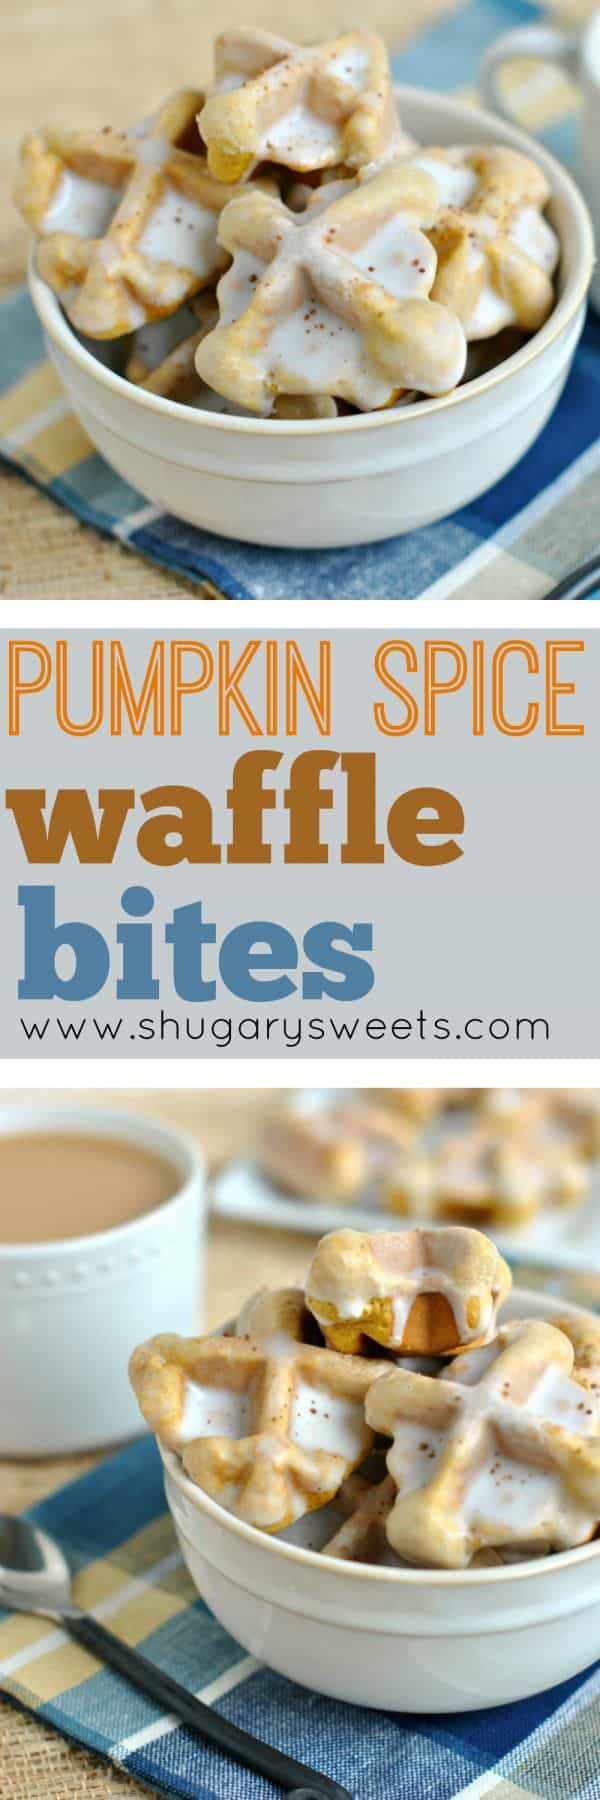 These Pumpkin Spice Waffle Bites are delicious, popable and the perfect breakfast idea! Next time your family asks for waffles, serve a big plate of these instead!